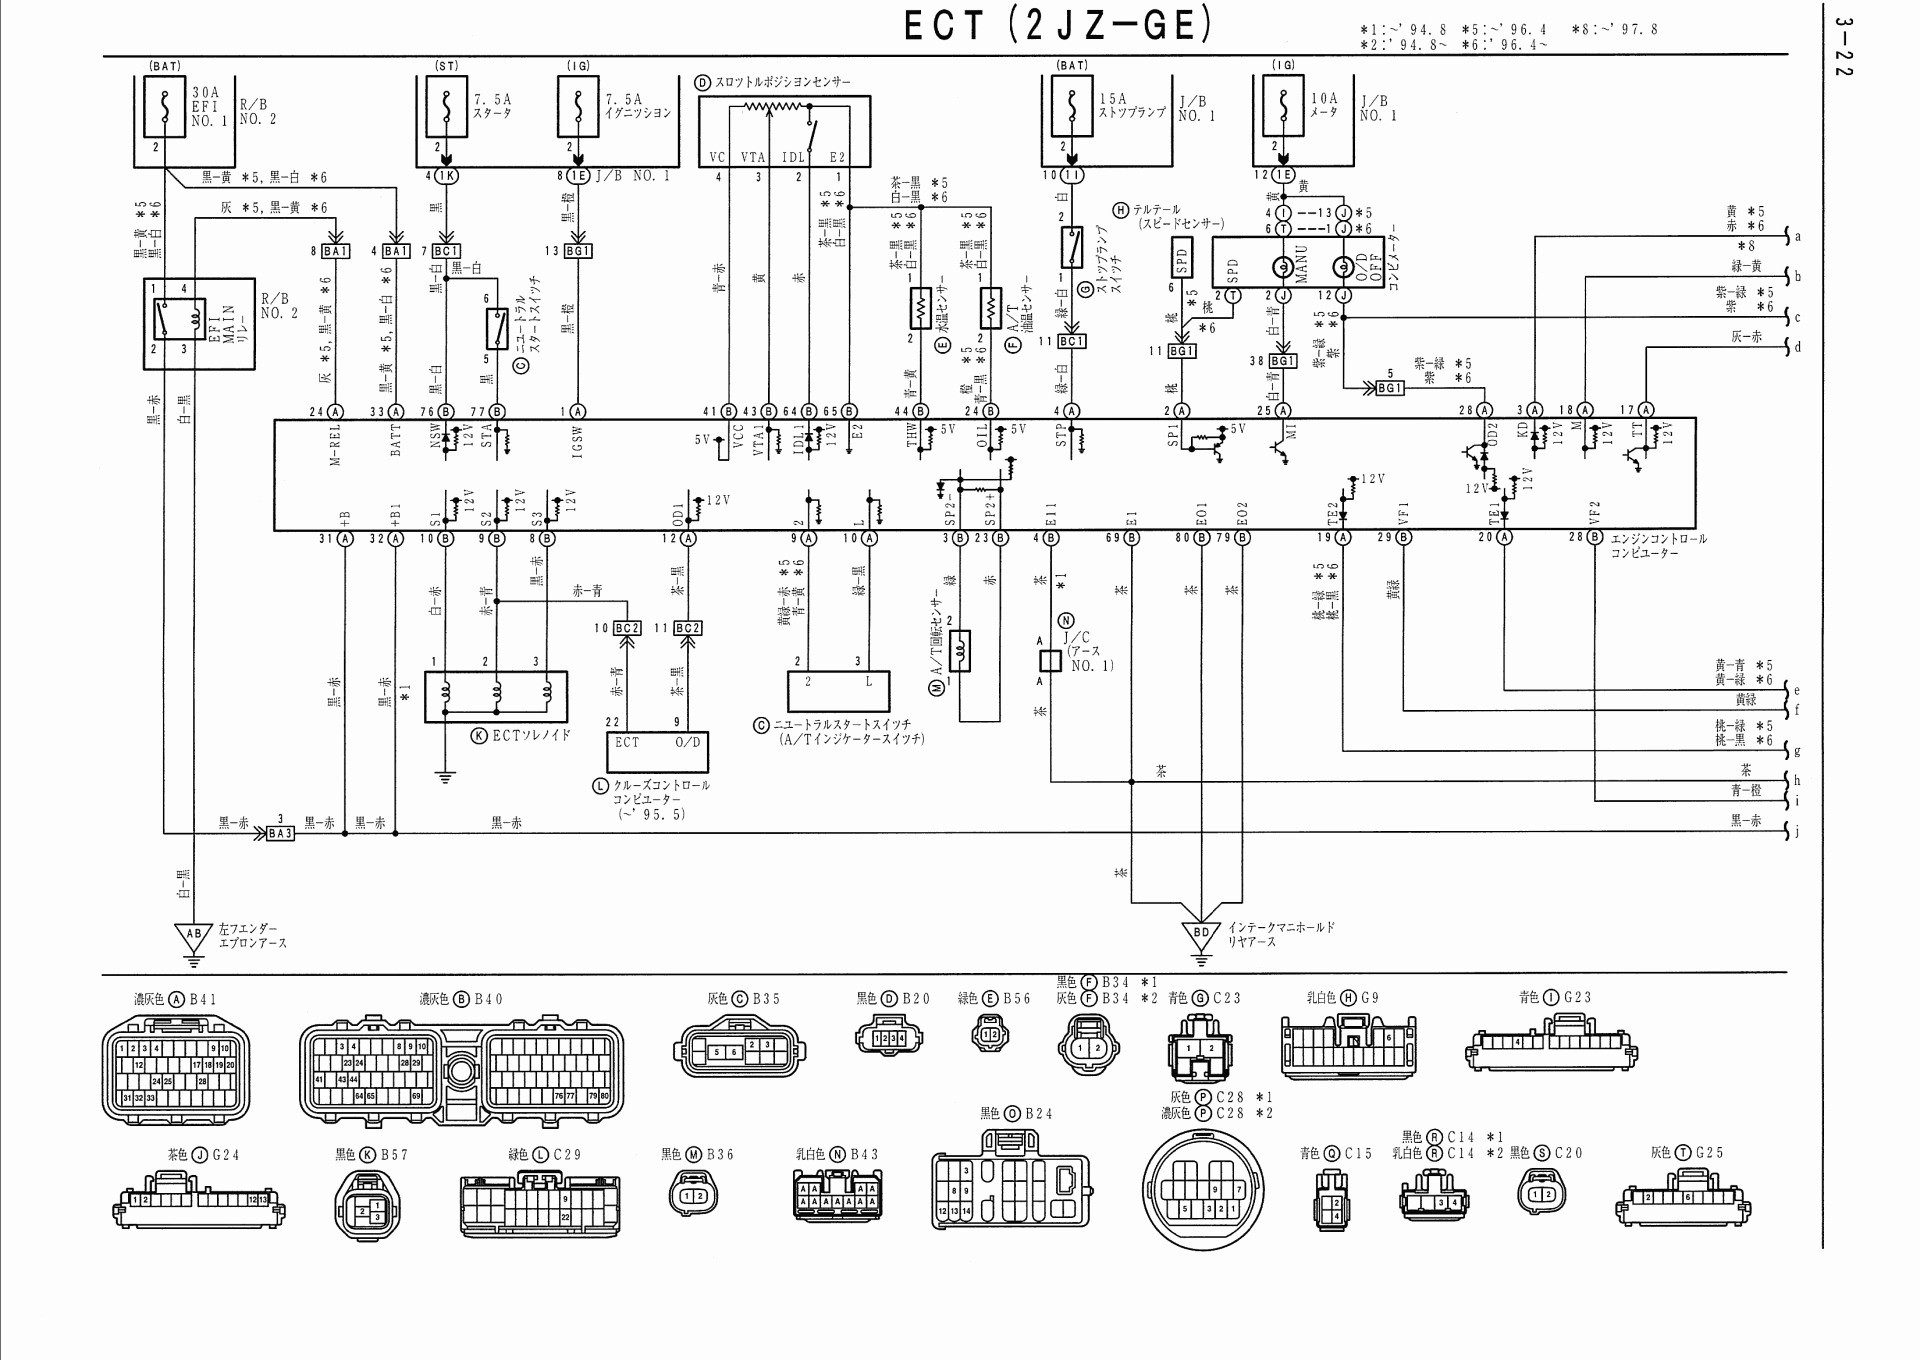 1997 Bmw Wiring Diagram Wiring Diagram Bite Teach Bite Teach Lechicchedimammavale It